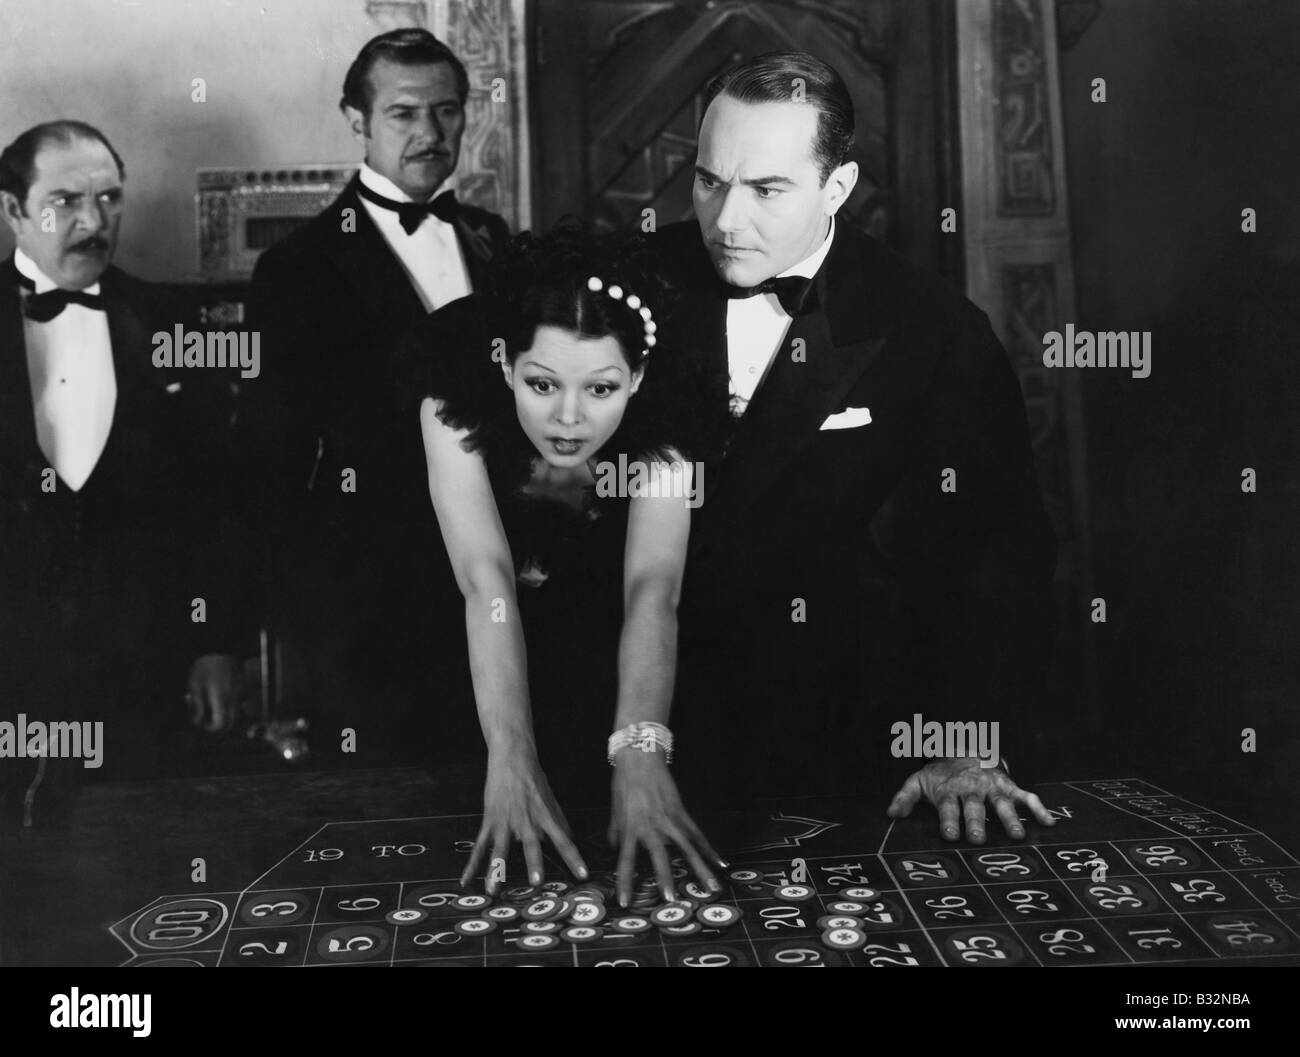 Shocked people at craps table - Stock Image